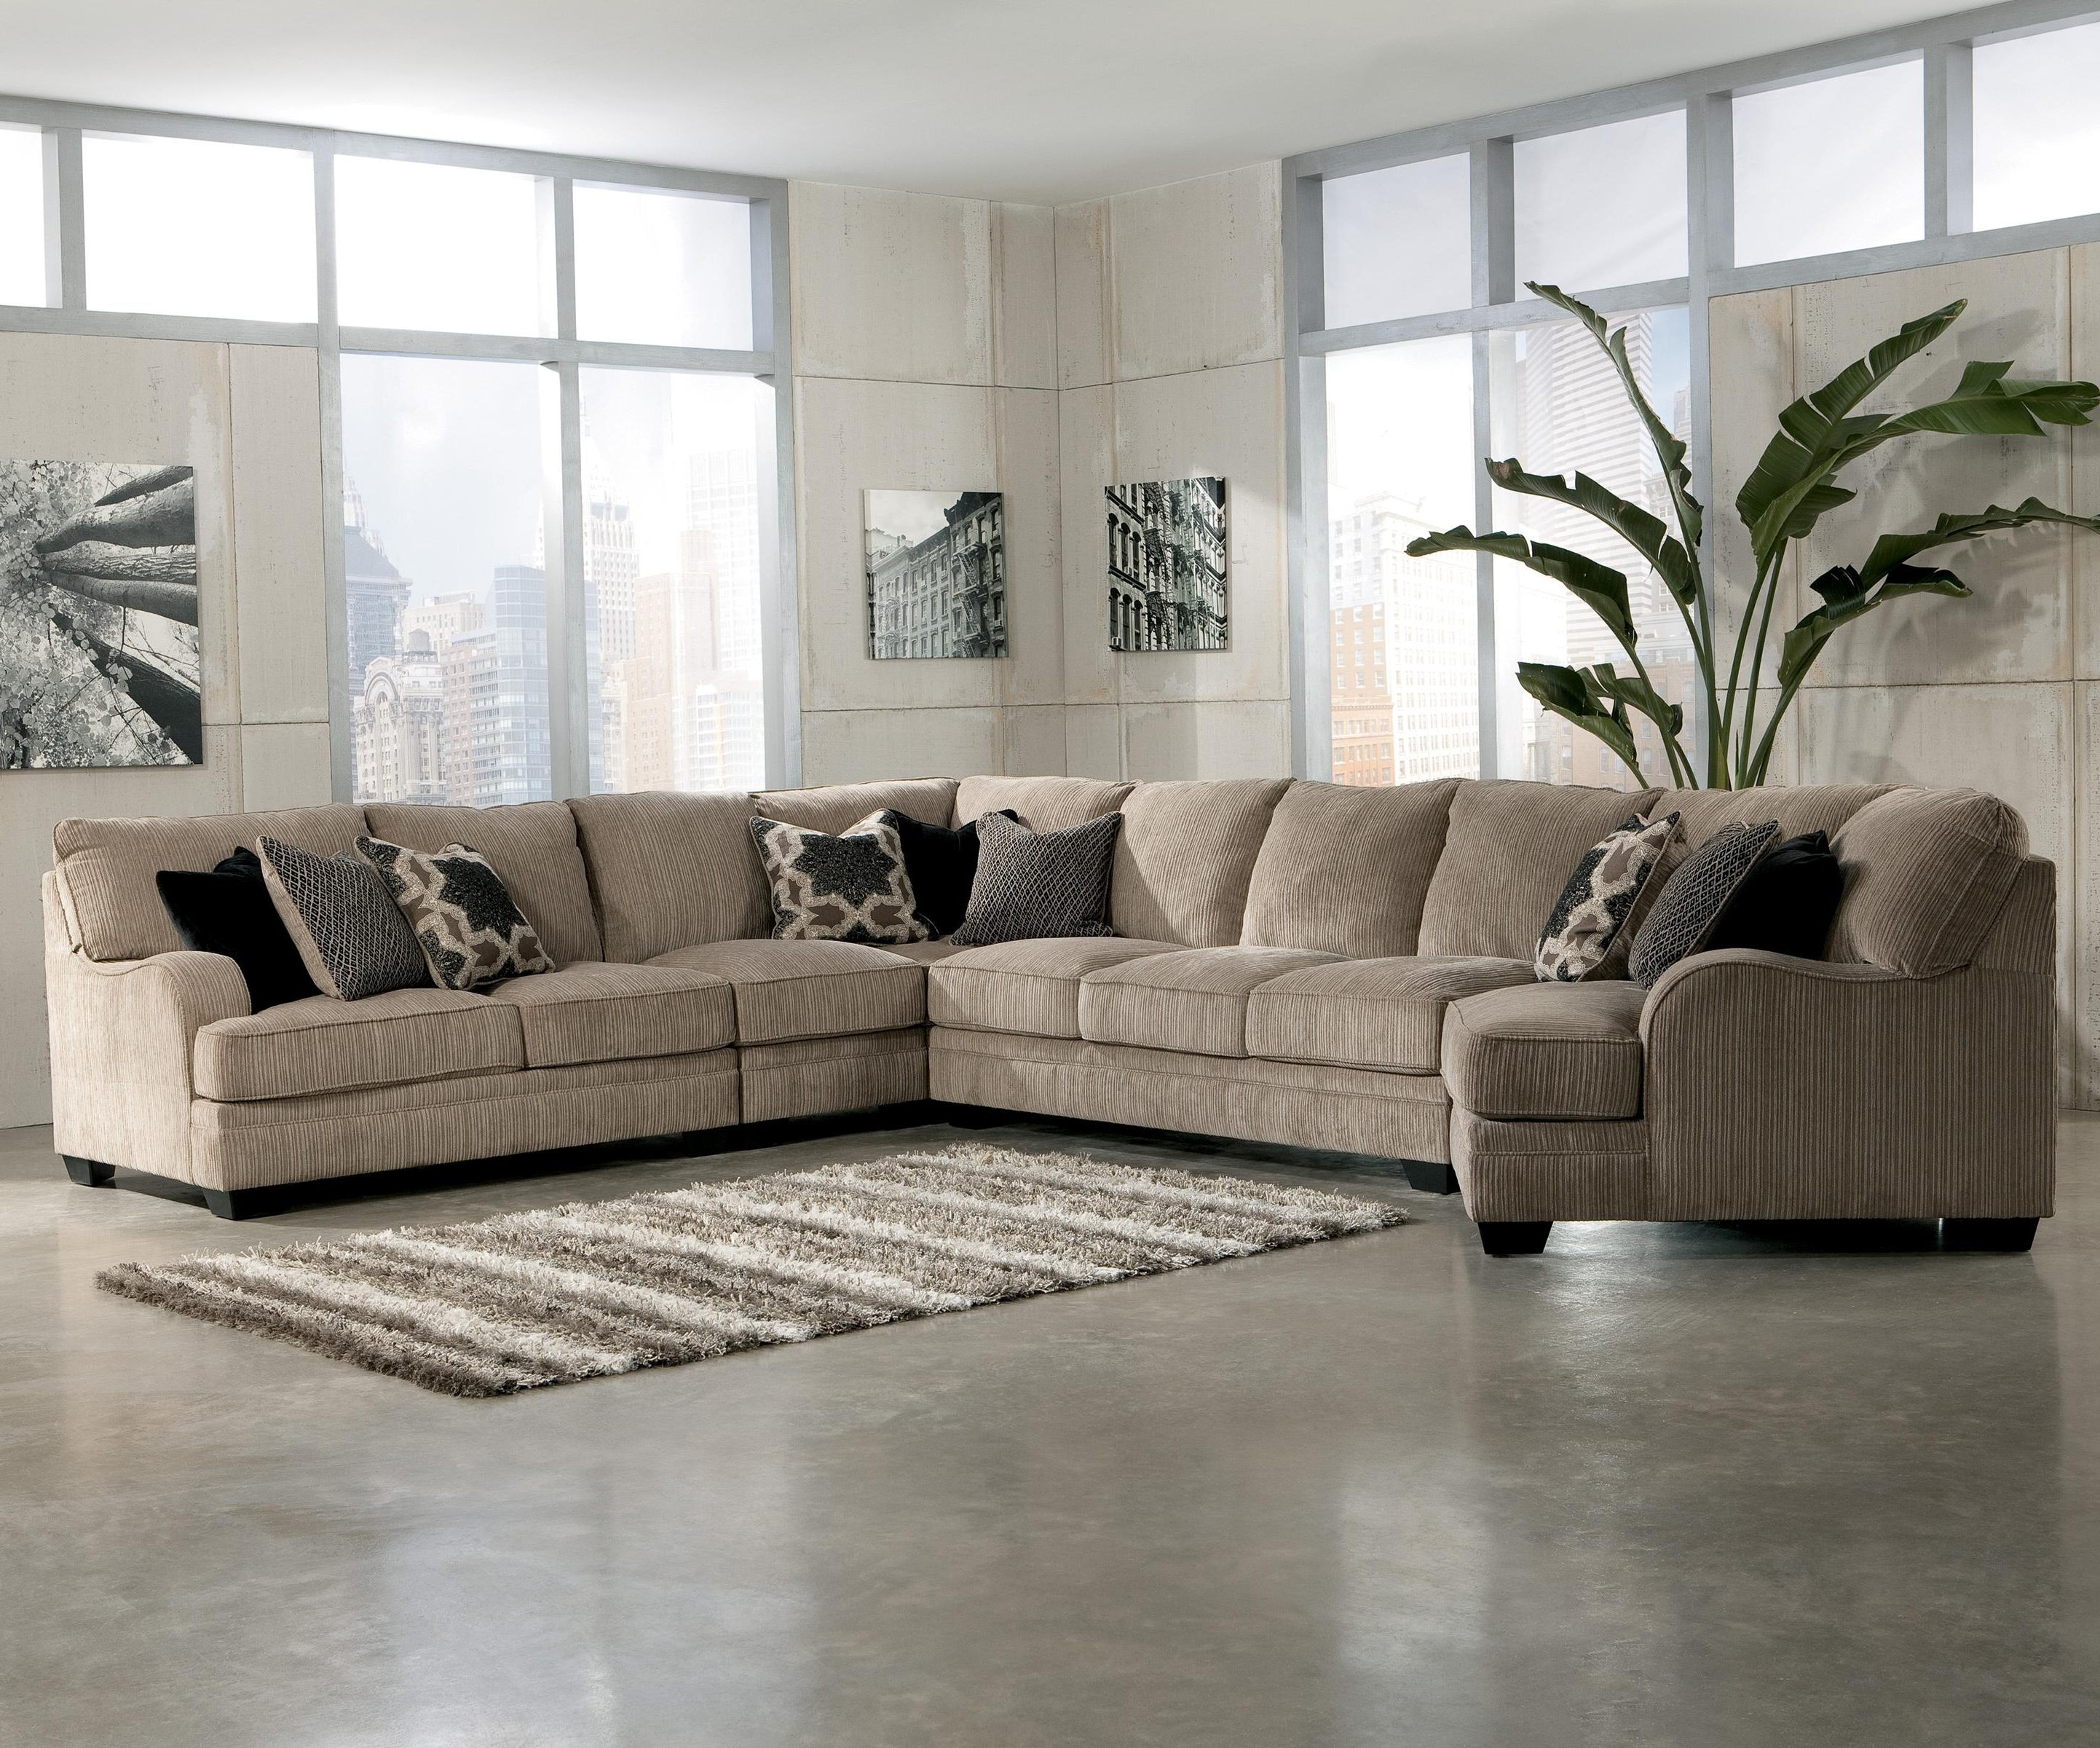 Blaine 4 Piece Sectionals Intended For Fashionable Signature Designashley Katisha – Platinum 5 Piece Sectional Sofa (View 6 of 20)